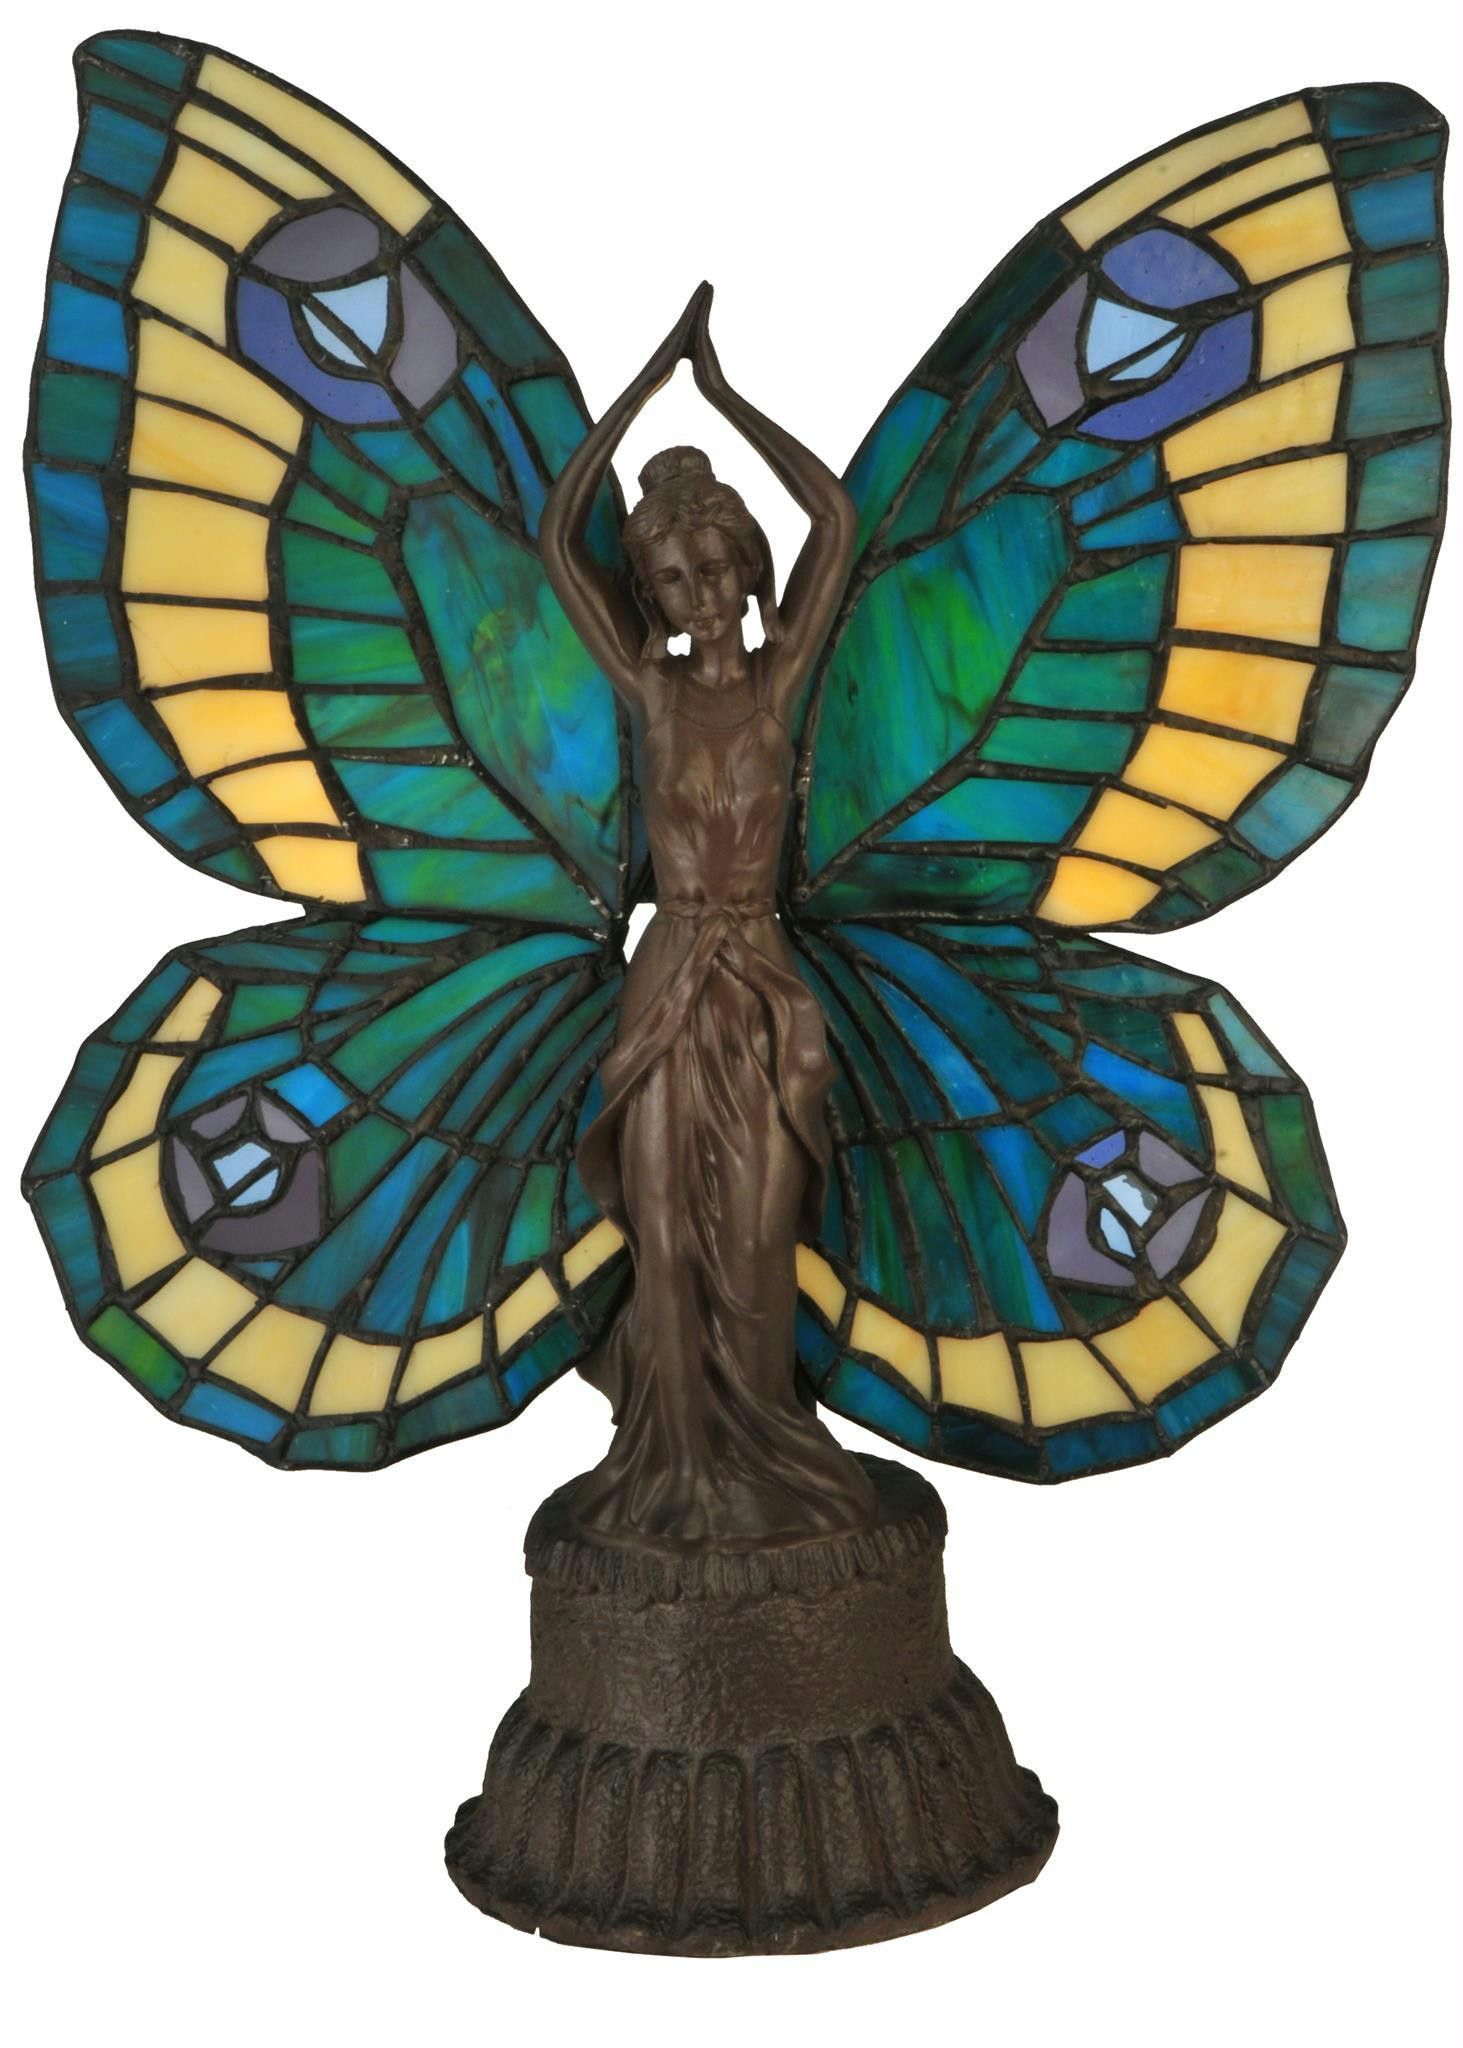 inch butterfly lady accent lamp products glass table tiffany art lamps shades clearance deck furniture lighting round decorator cloth coral home accents coffee calgary stool high